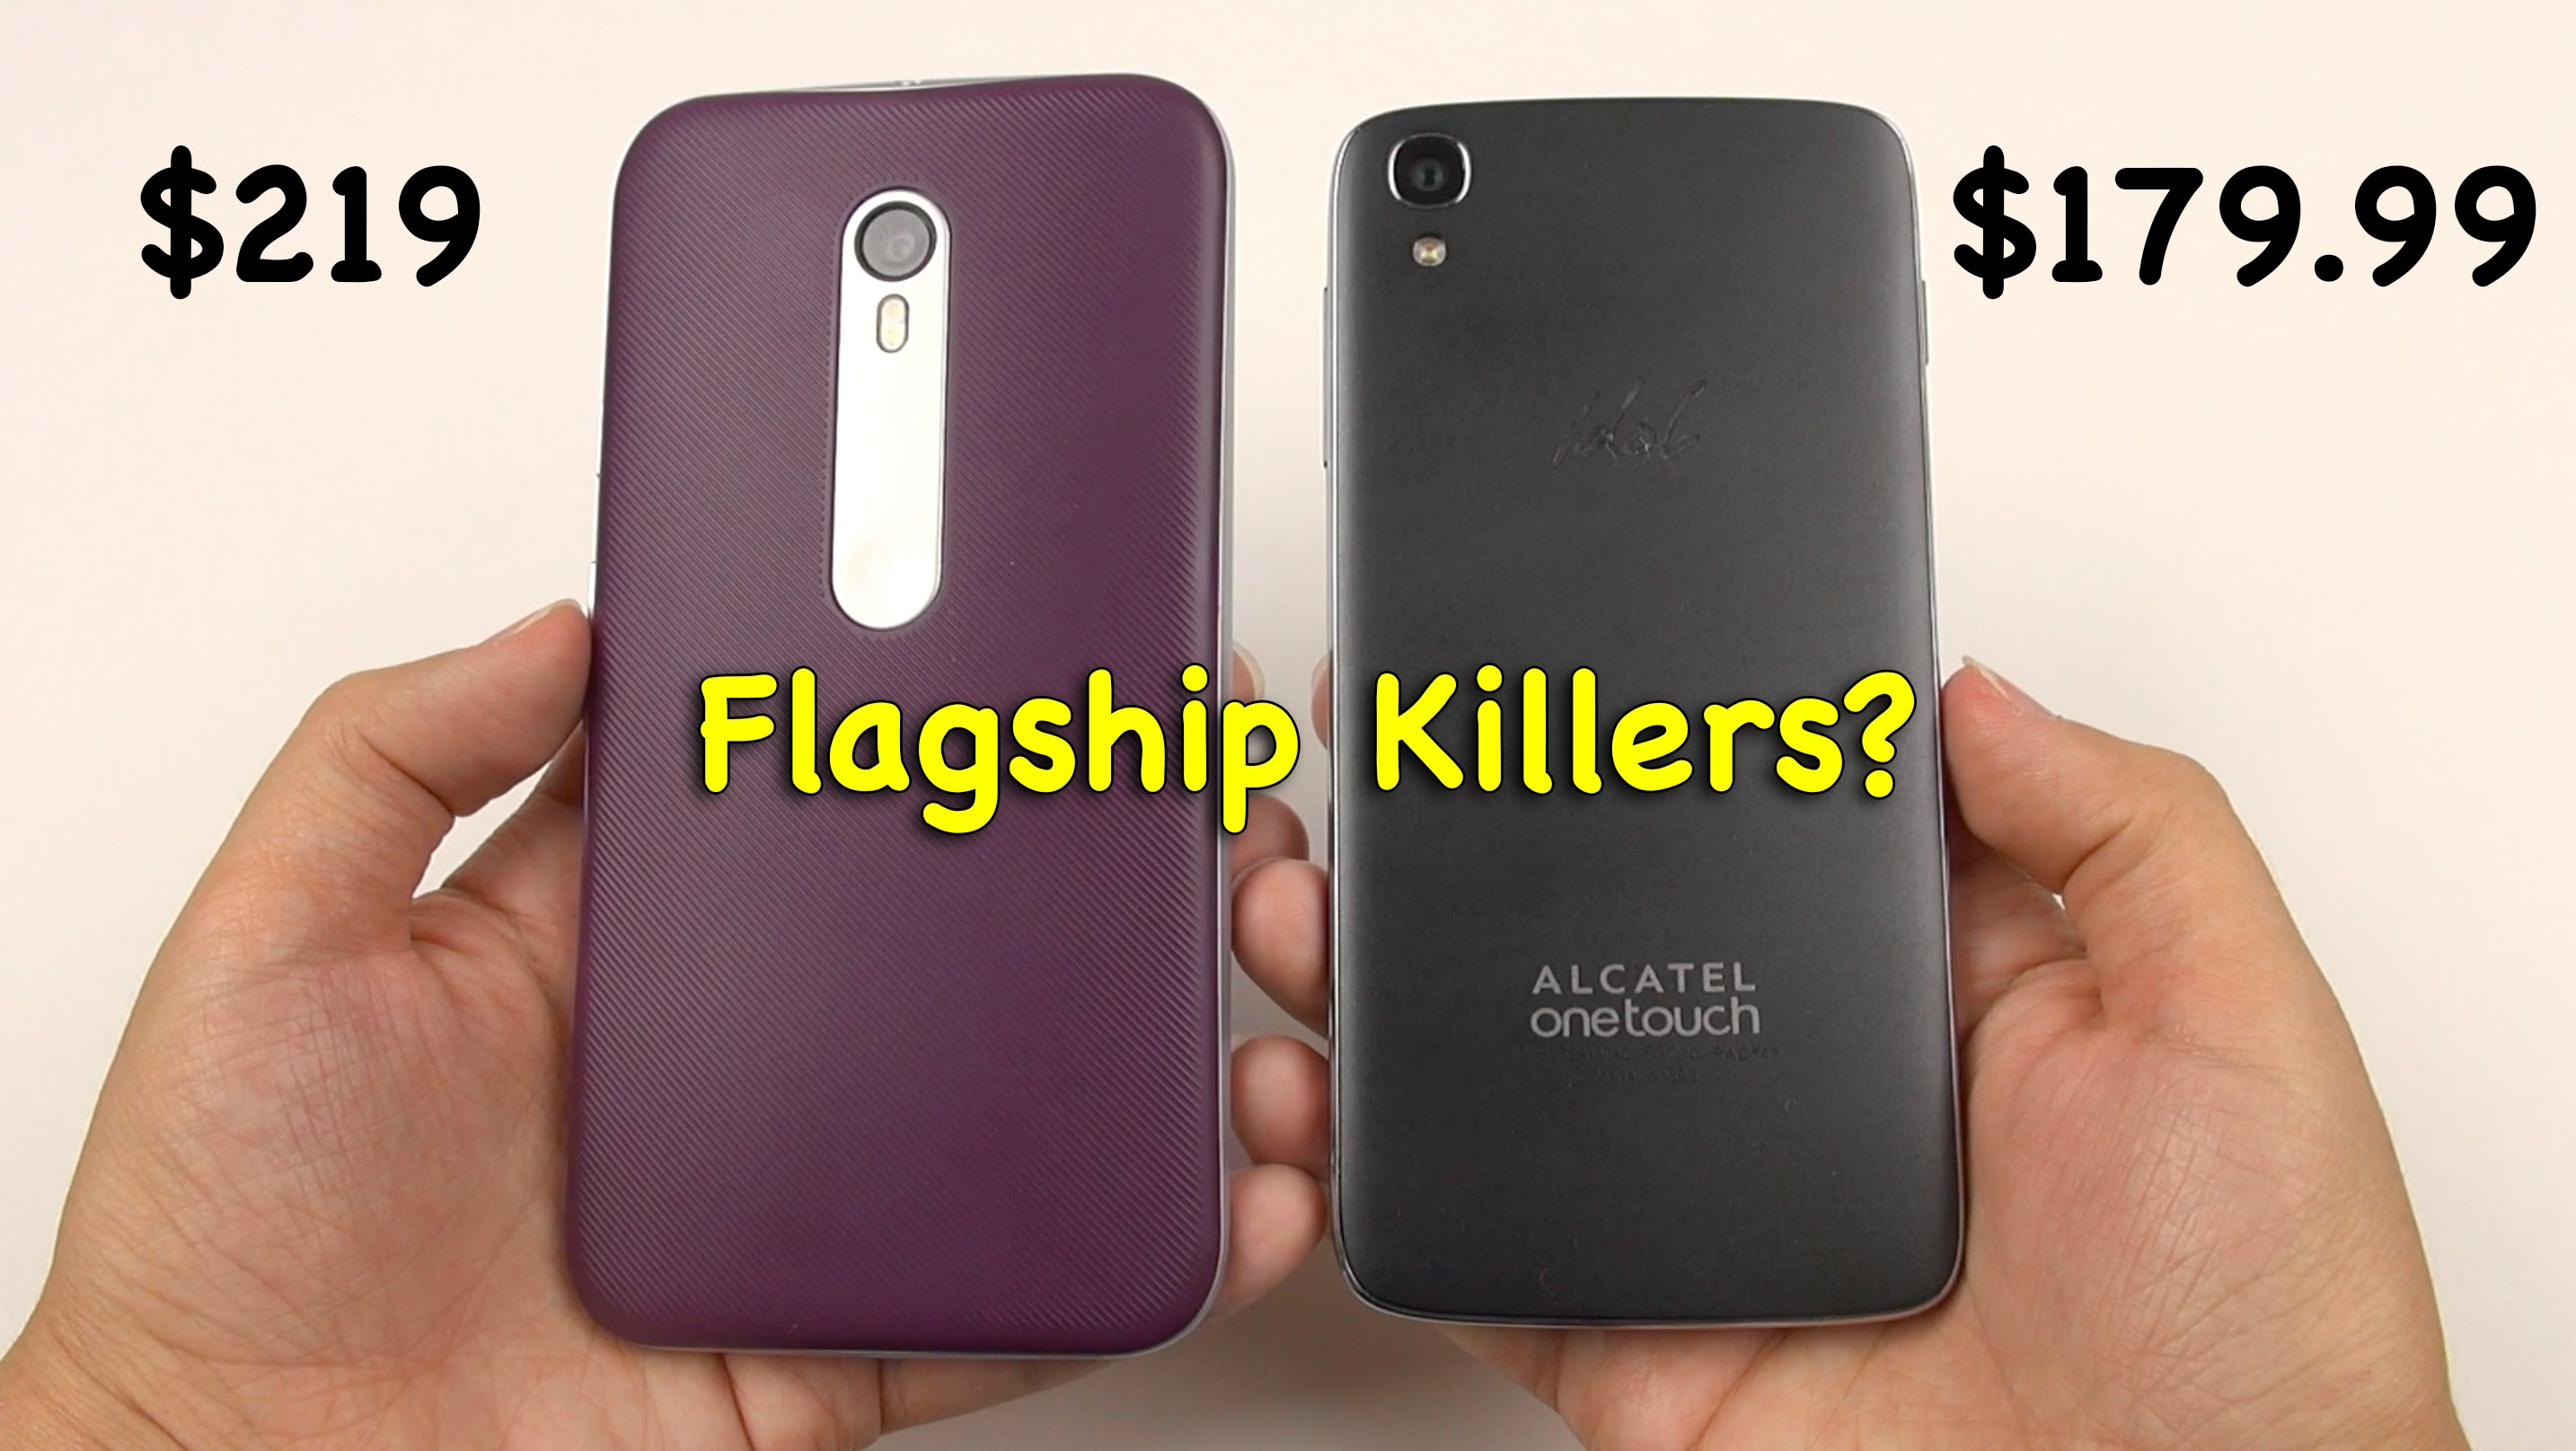 Moto G 2015 vs Idol 3 4.7: Flagship Killers?